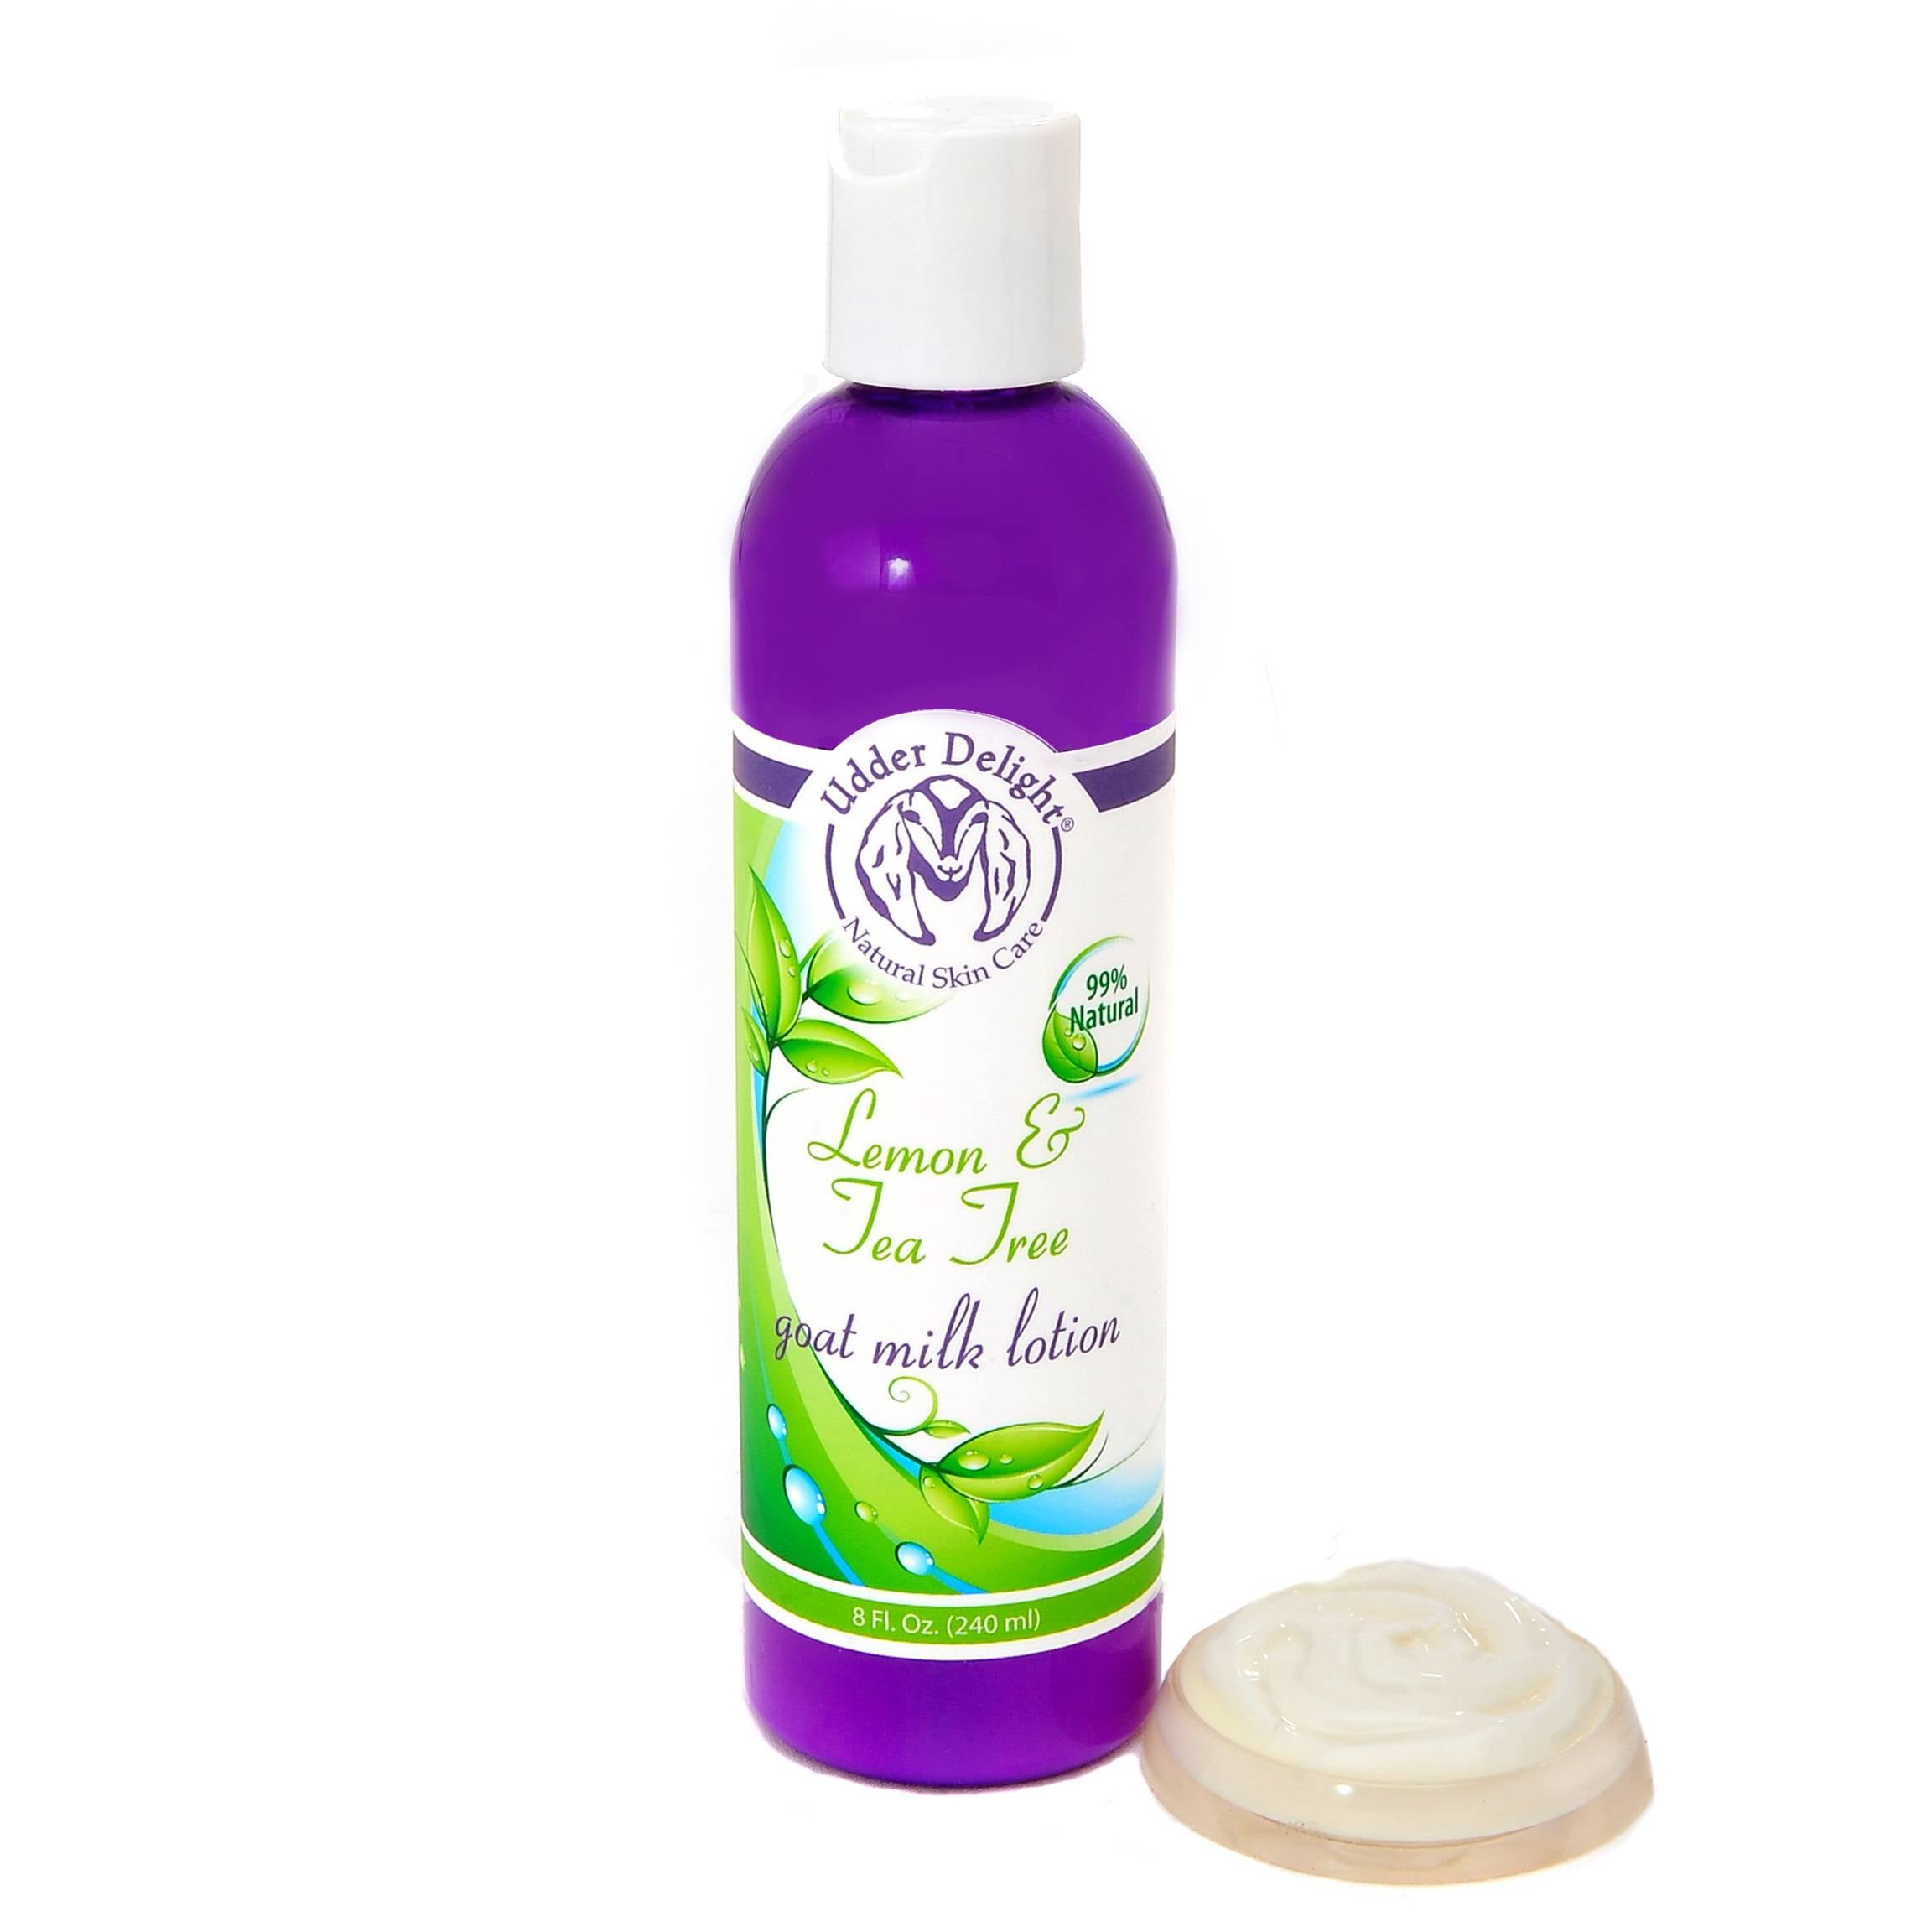 Lemon & Tea Tree Lotion